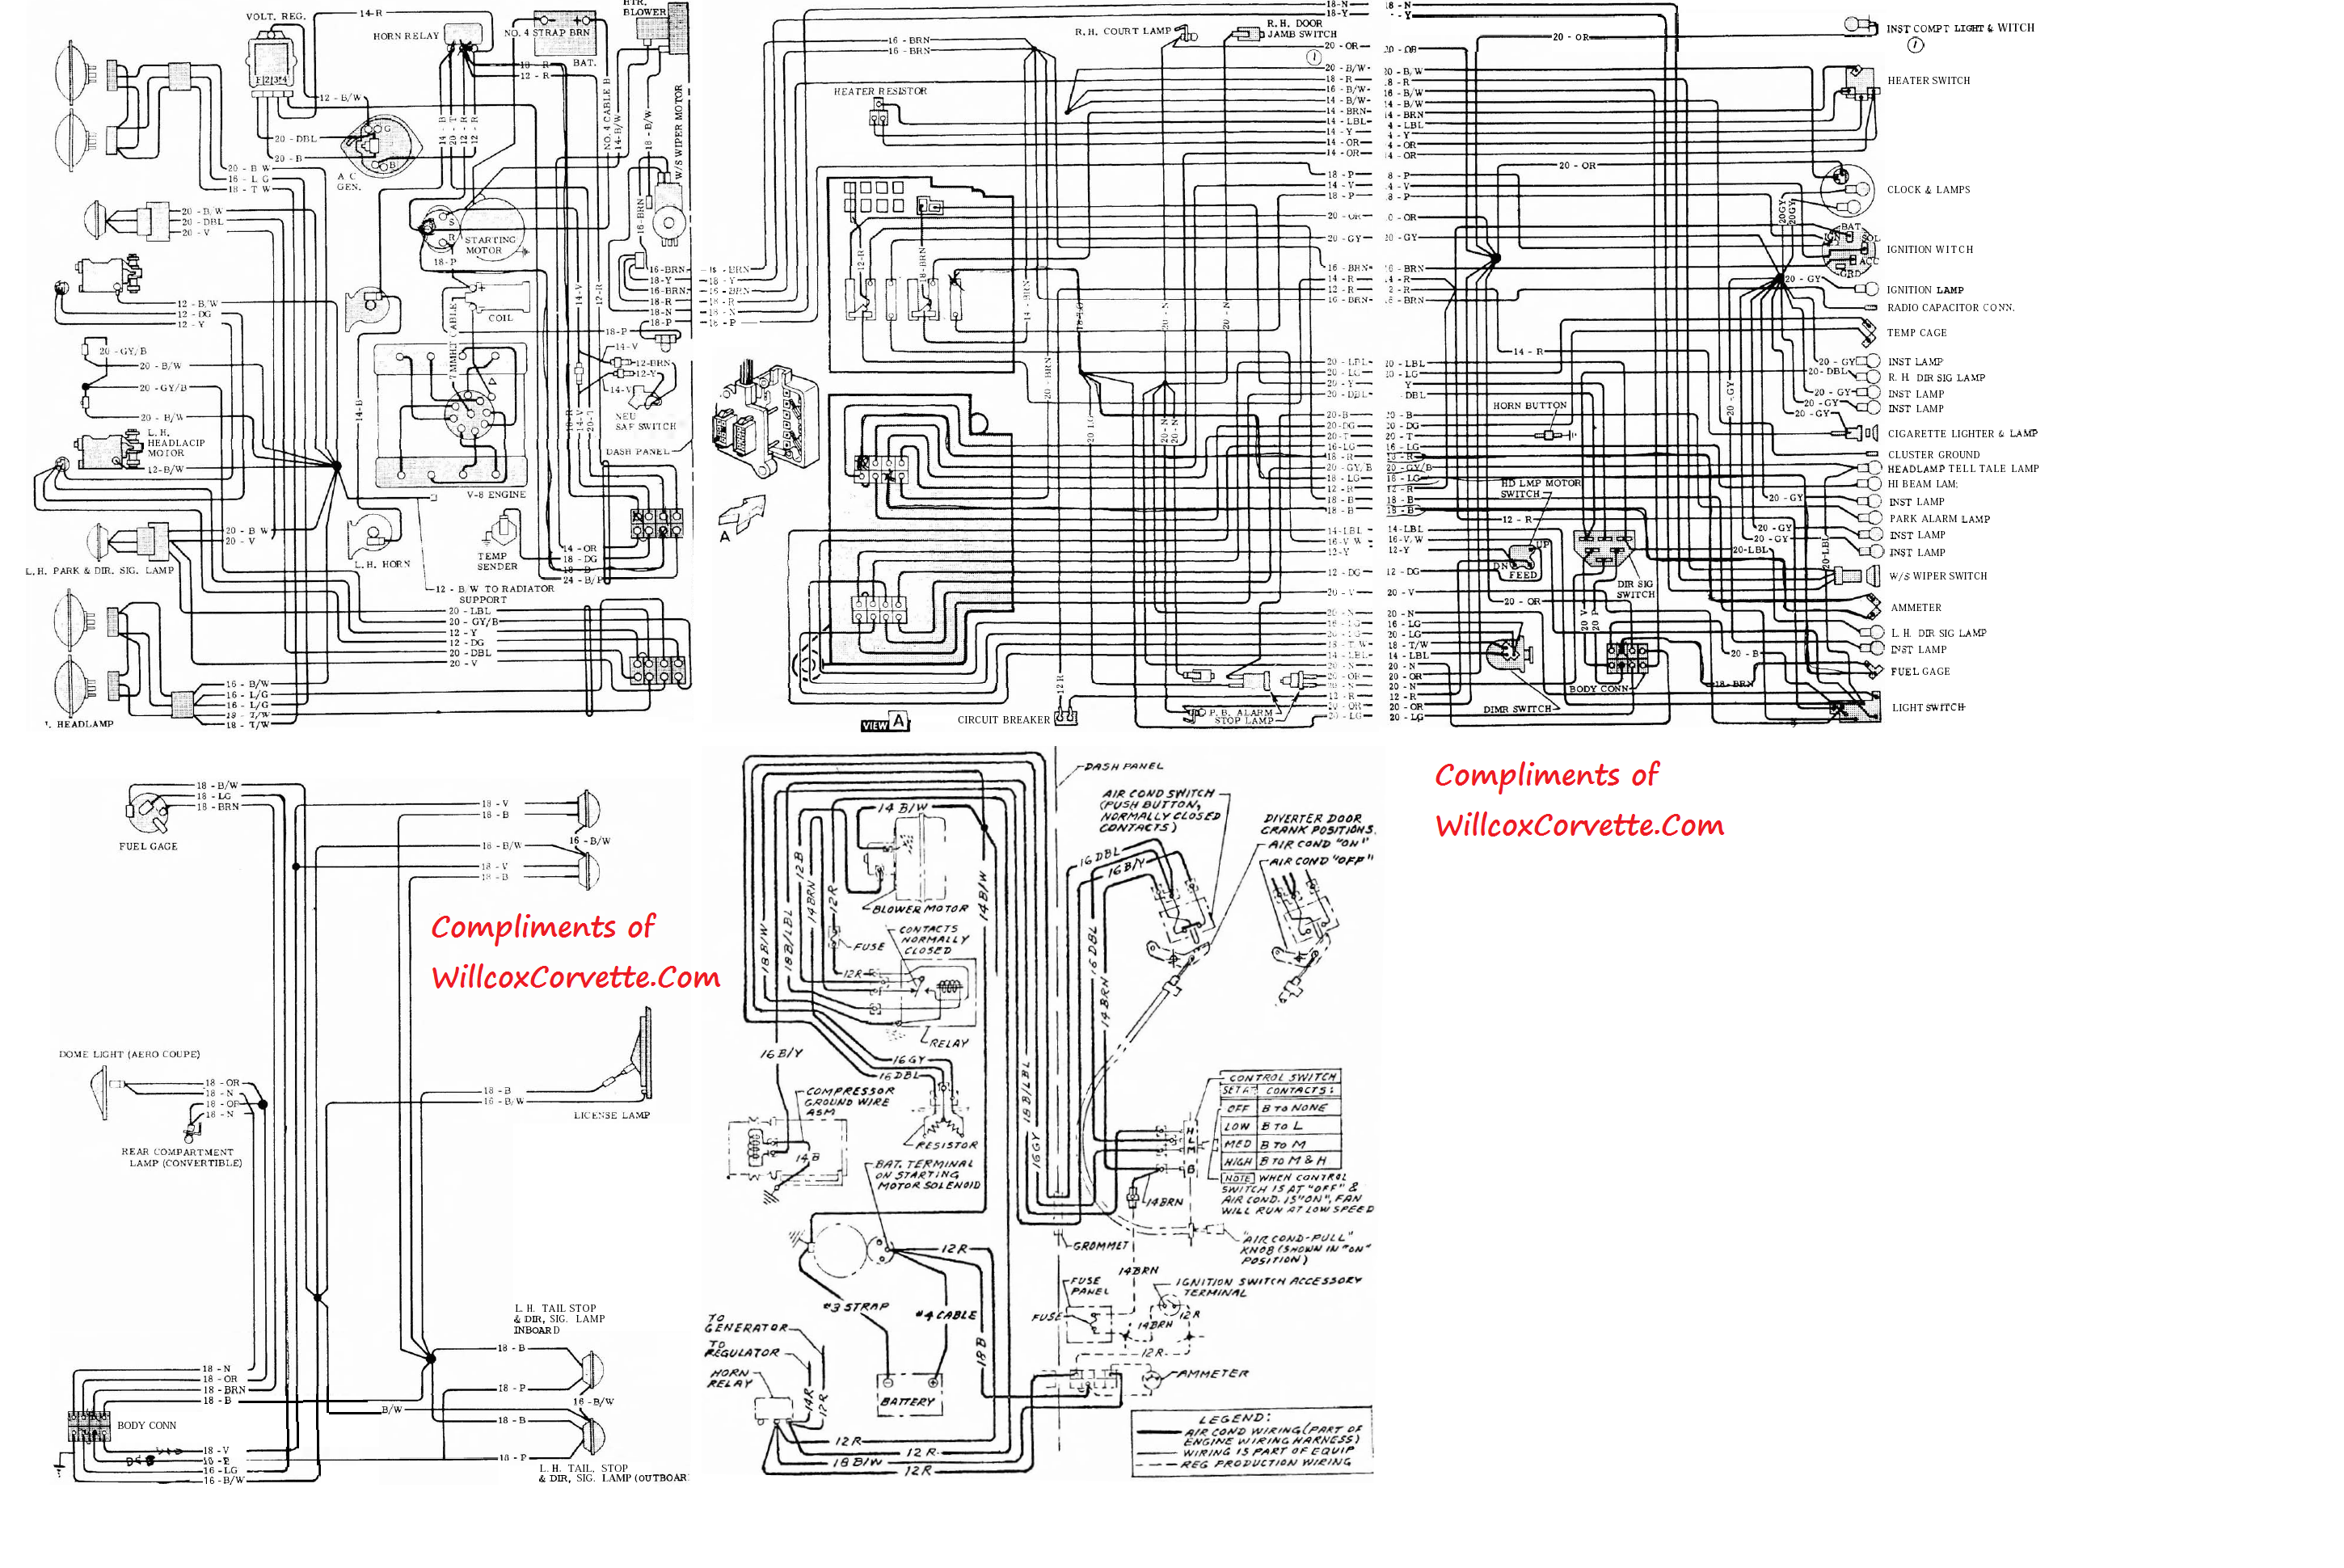 69 Corvette Chassis Wiring Diagram - Get Wiring Diagram g body wiring diagram posteit.co